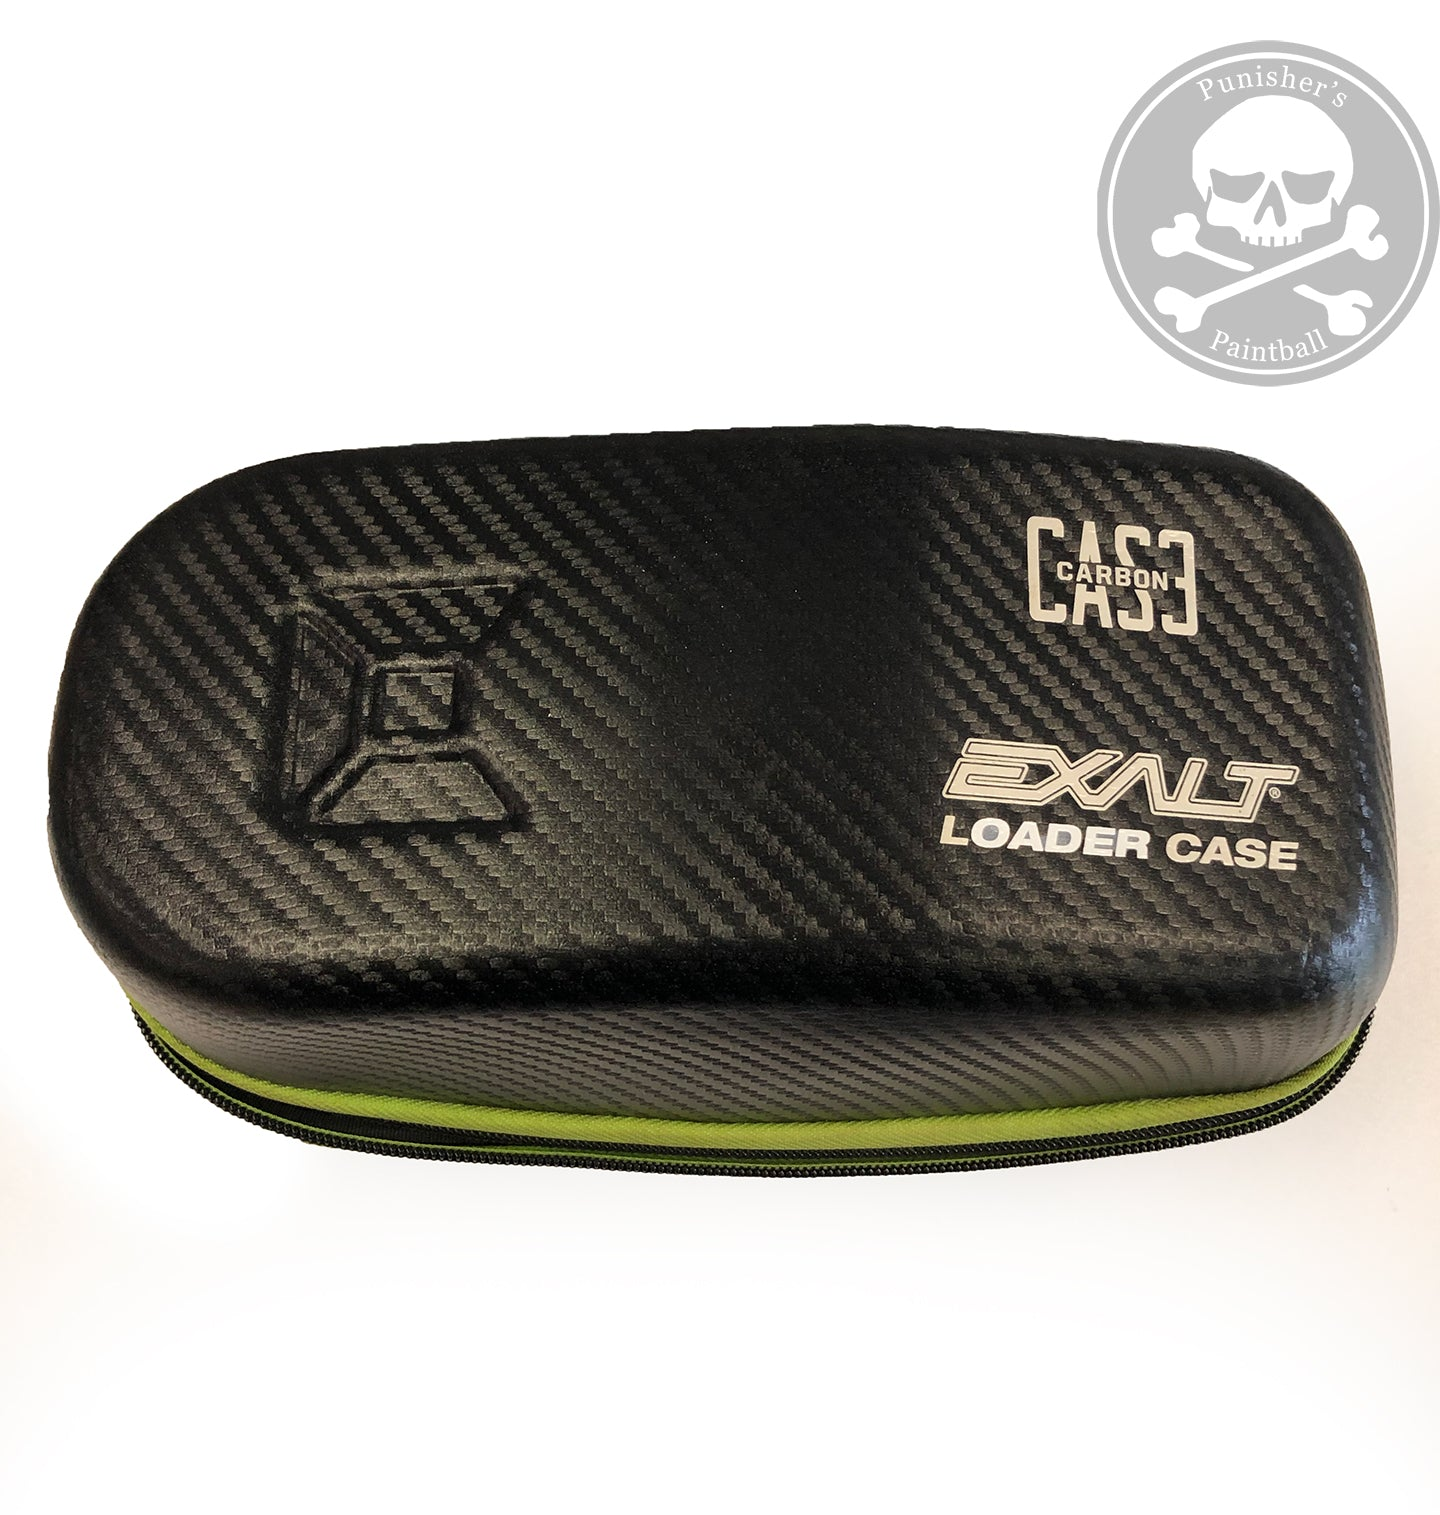 Used Exalt Loader Case - Black